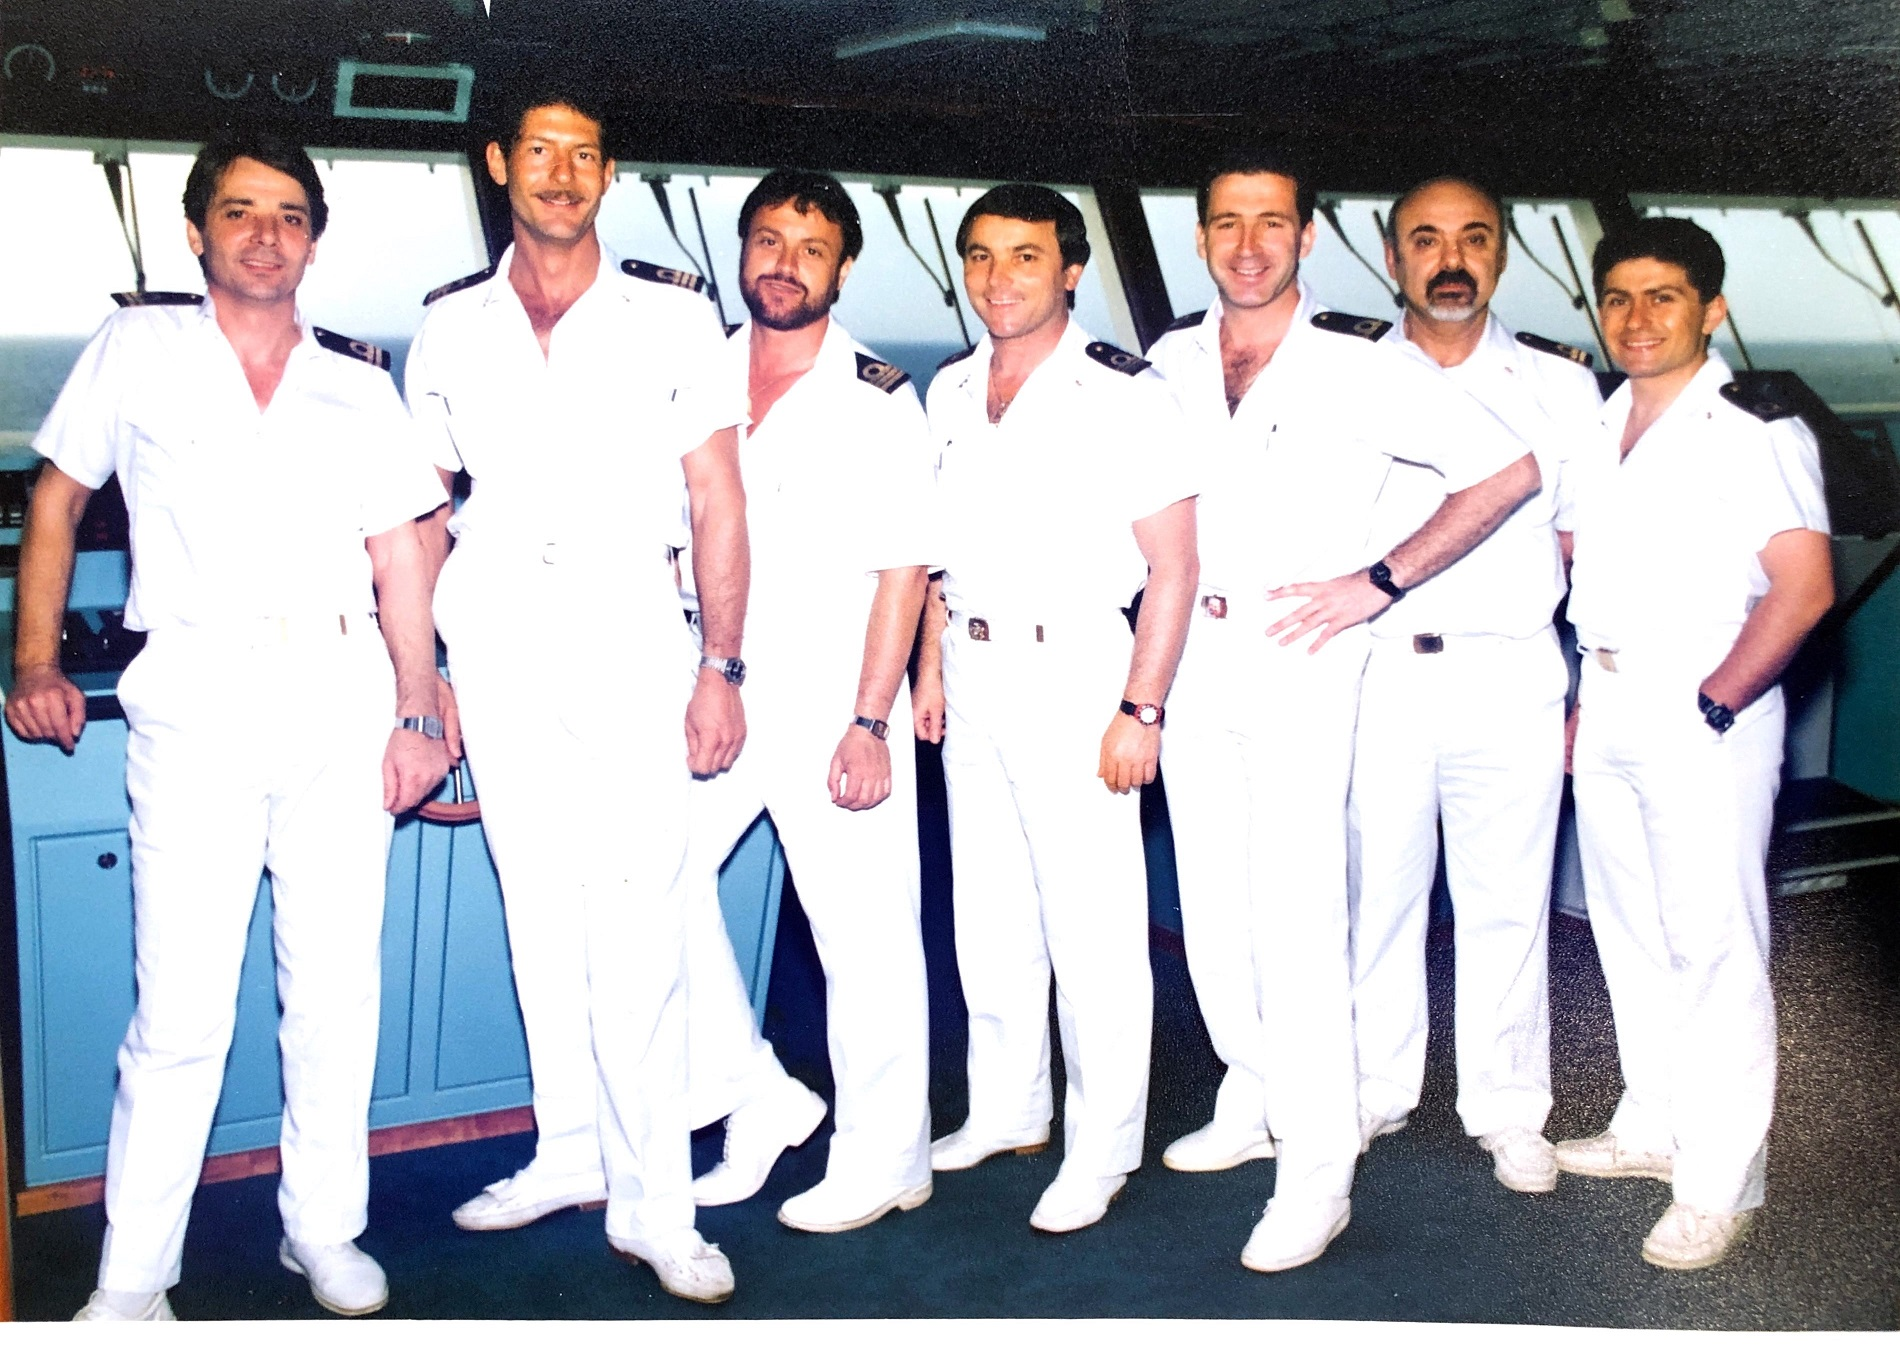 Carnival Fantasy's officers, including eventual Captains Alessandro Galotto (second from left) and Gaetano Gigliotti (third from right) are shown here on the ship's navigational bridge during start-up